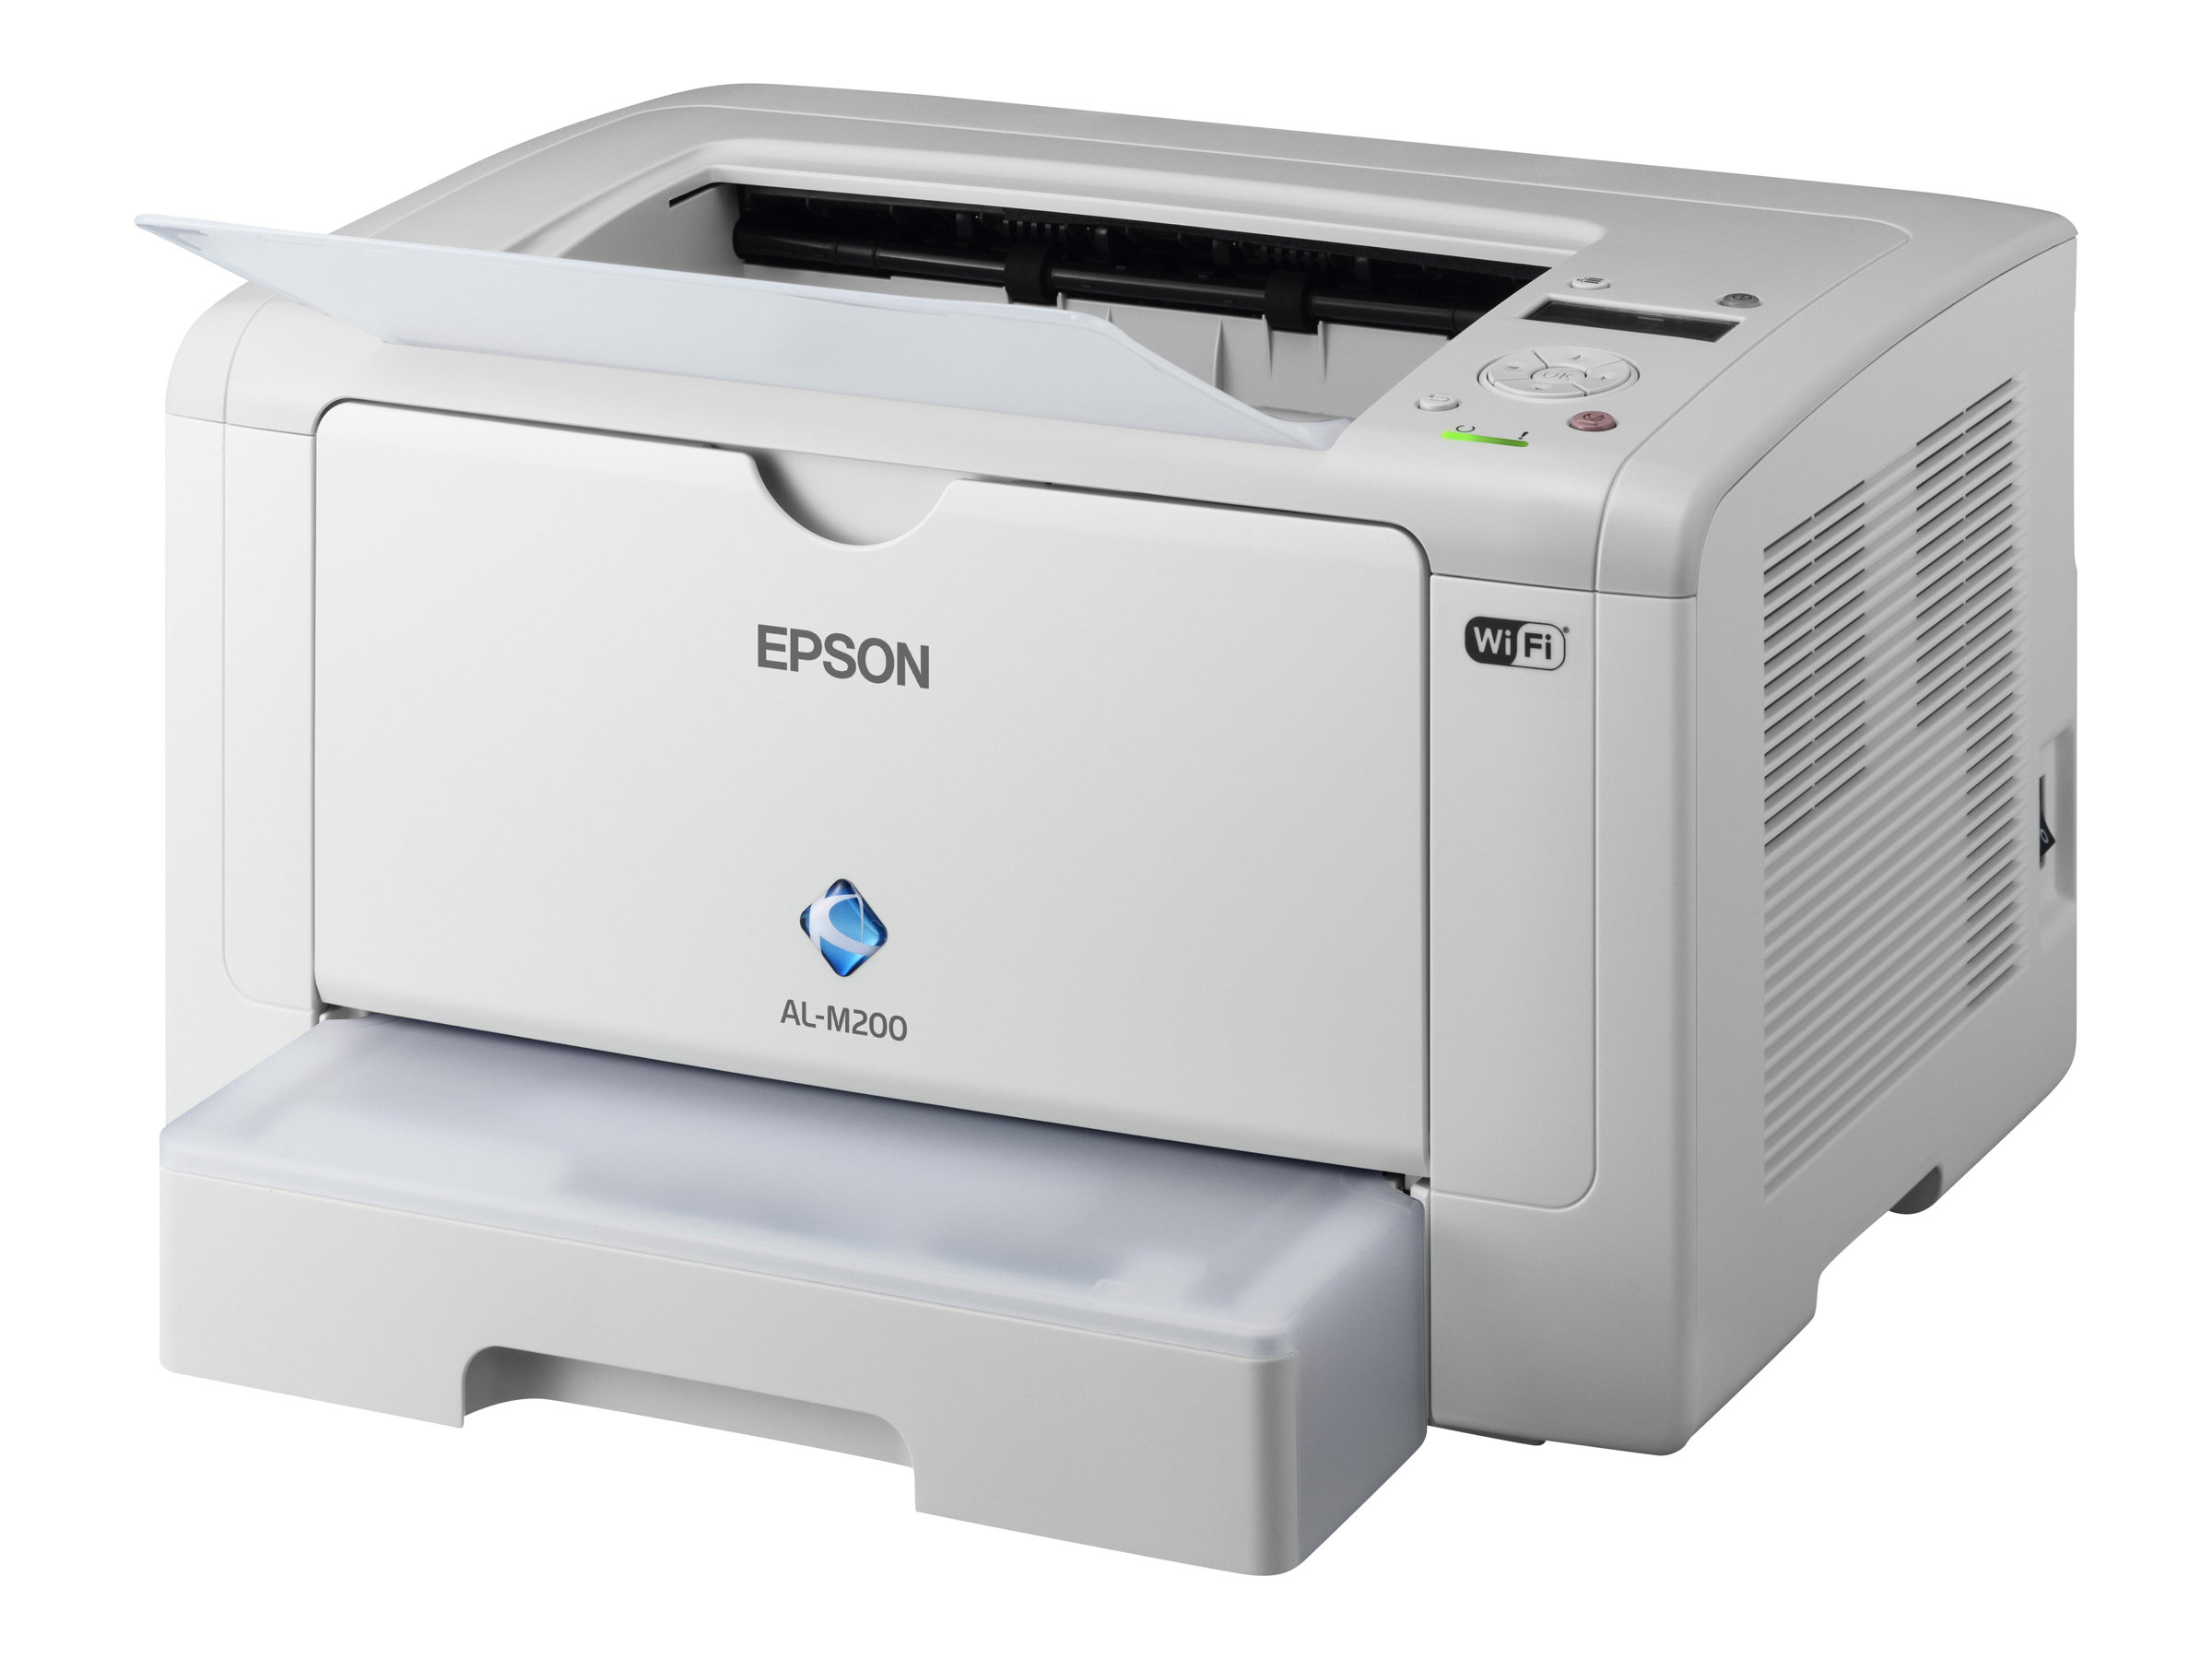 epson workforce al m200dw imprimante monochrome laser imprimantes laser neuves. Black Bedroom Furniture Sets. Home Design Ideas